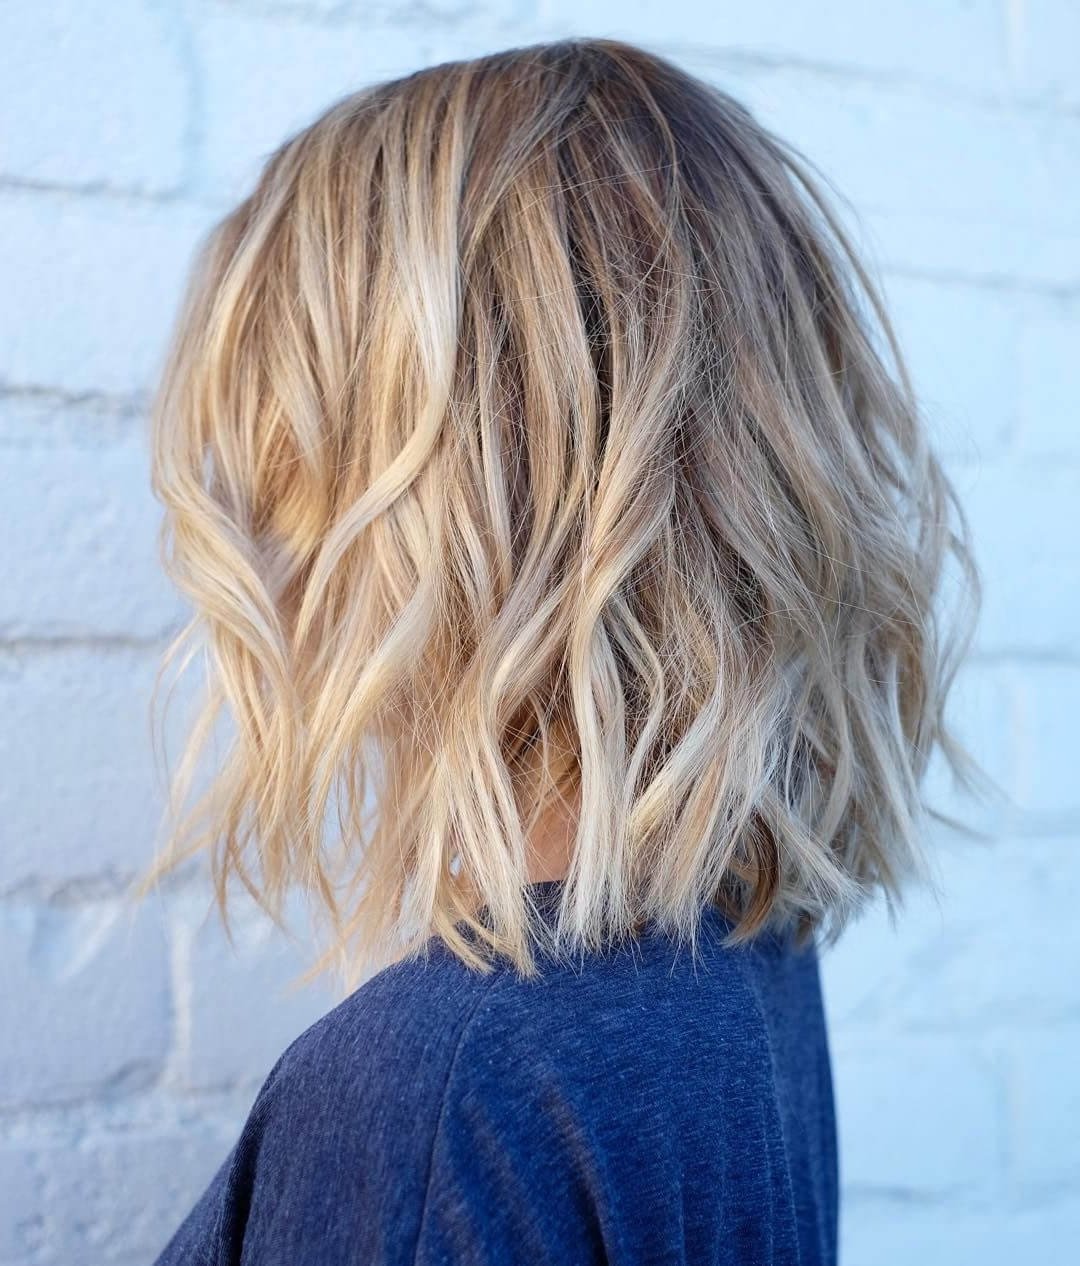 50 Fresh Short Blonde Hair Ideas To Update Your Style In 2018 Regarding Famous Shaggy Pixie Hairstyles With Balayage Highlights (View 15 of 20)